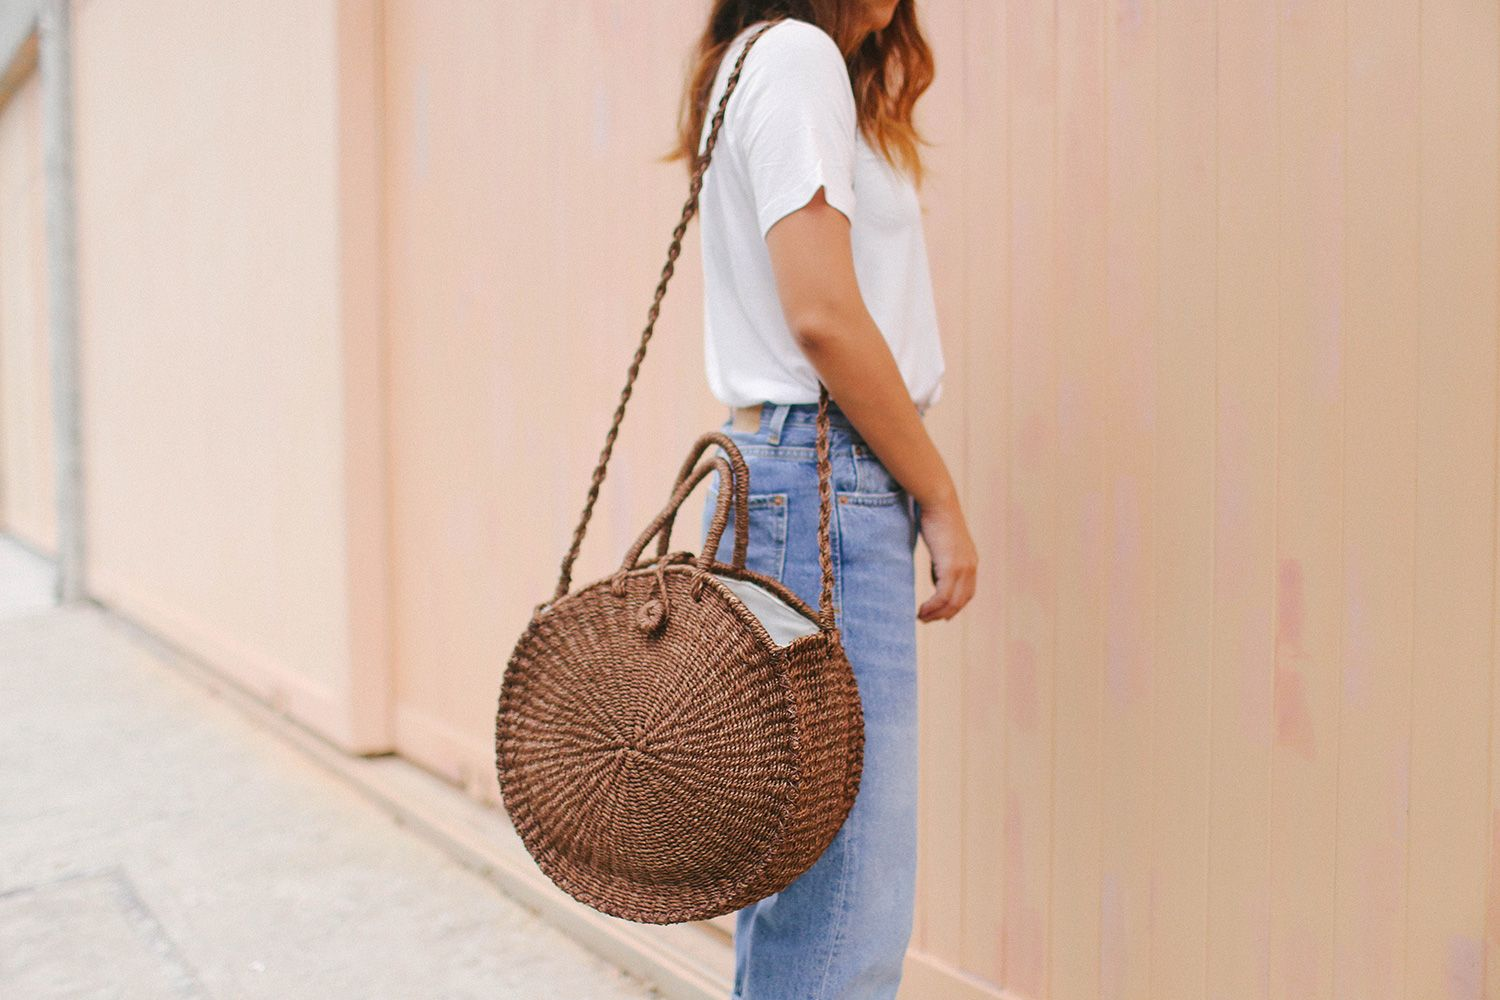 1db77658111 Follow if you like what you see  ) ~  harmony0406   Ticao Bag in Brown